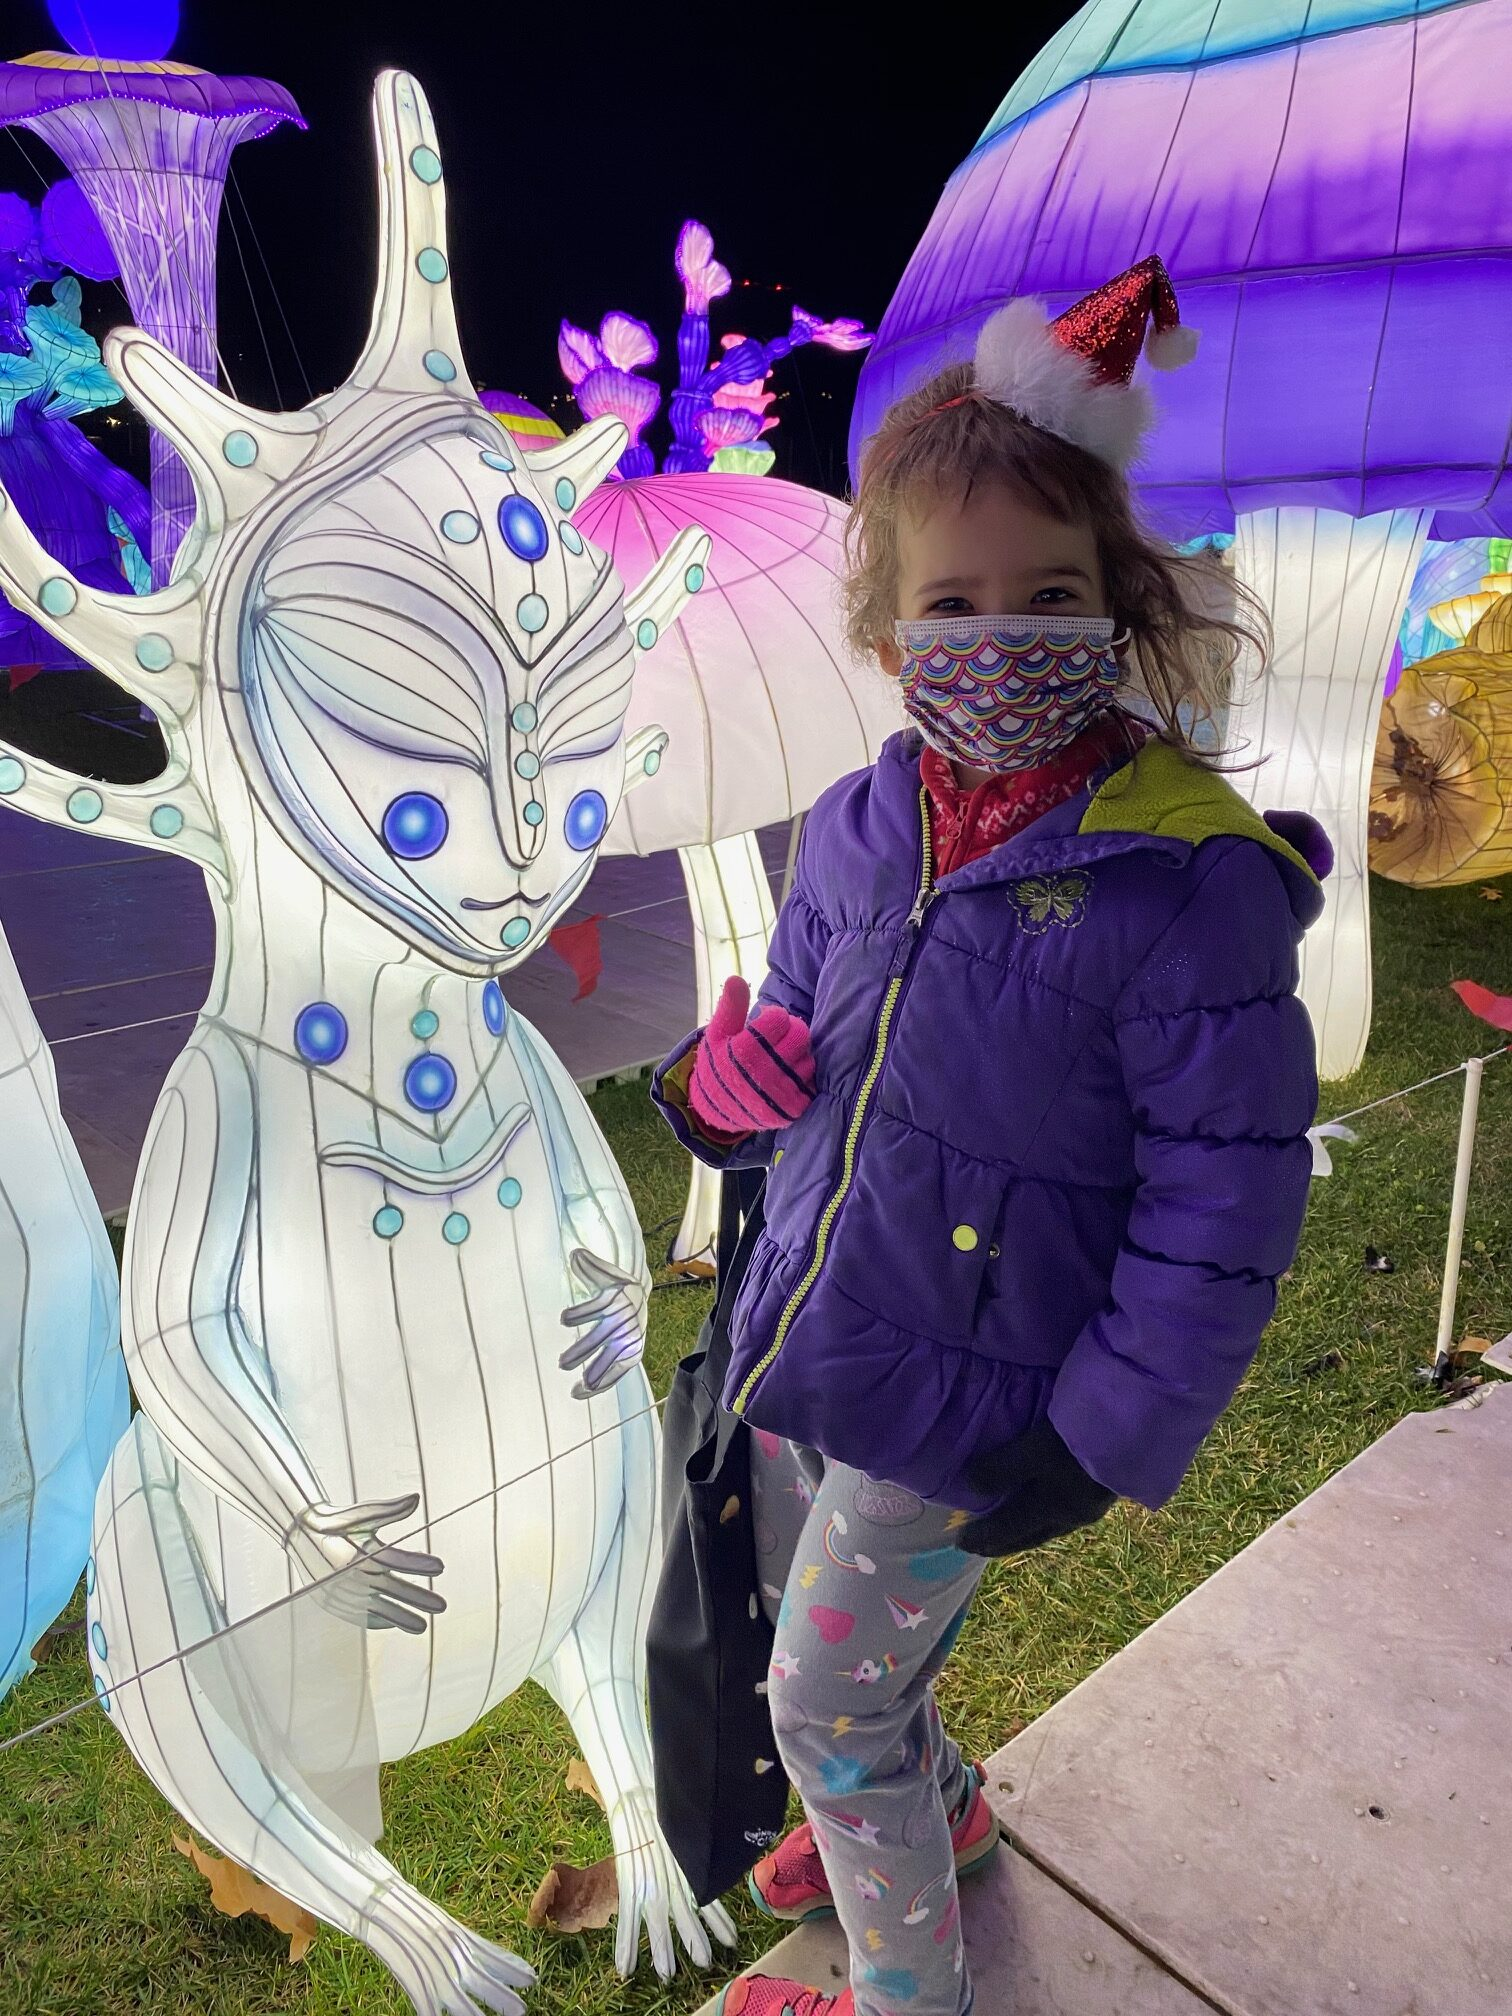 Enter the Magical World of the LuminoCity Festival kids